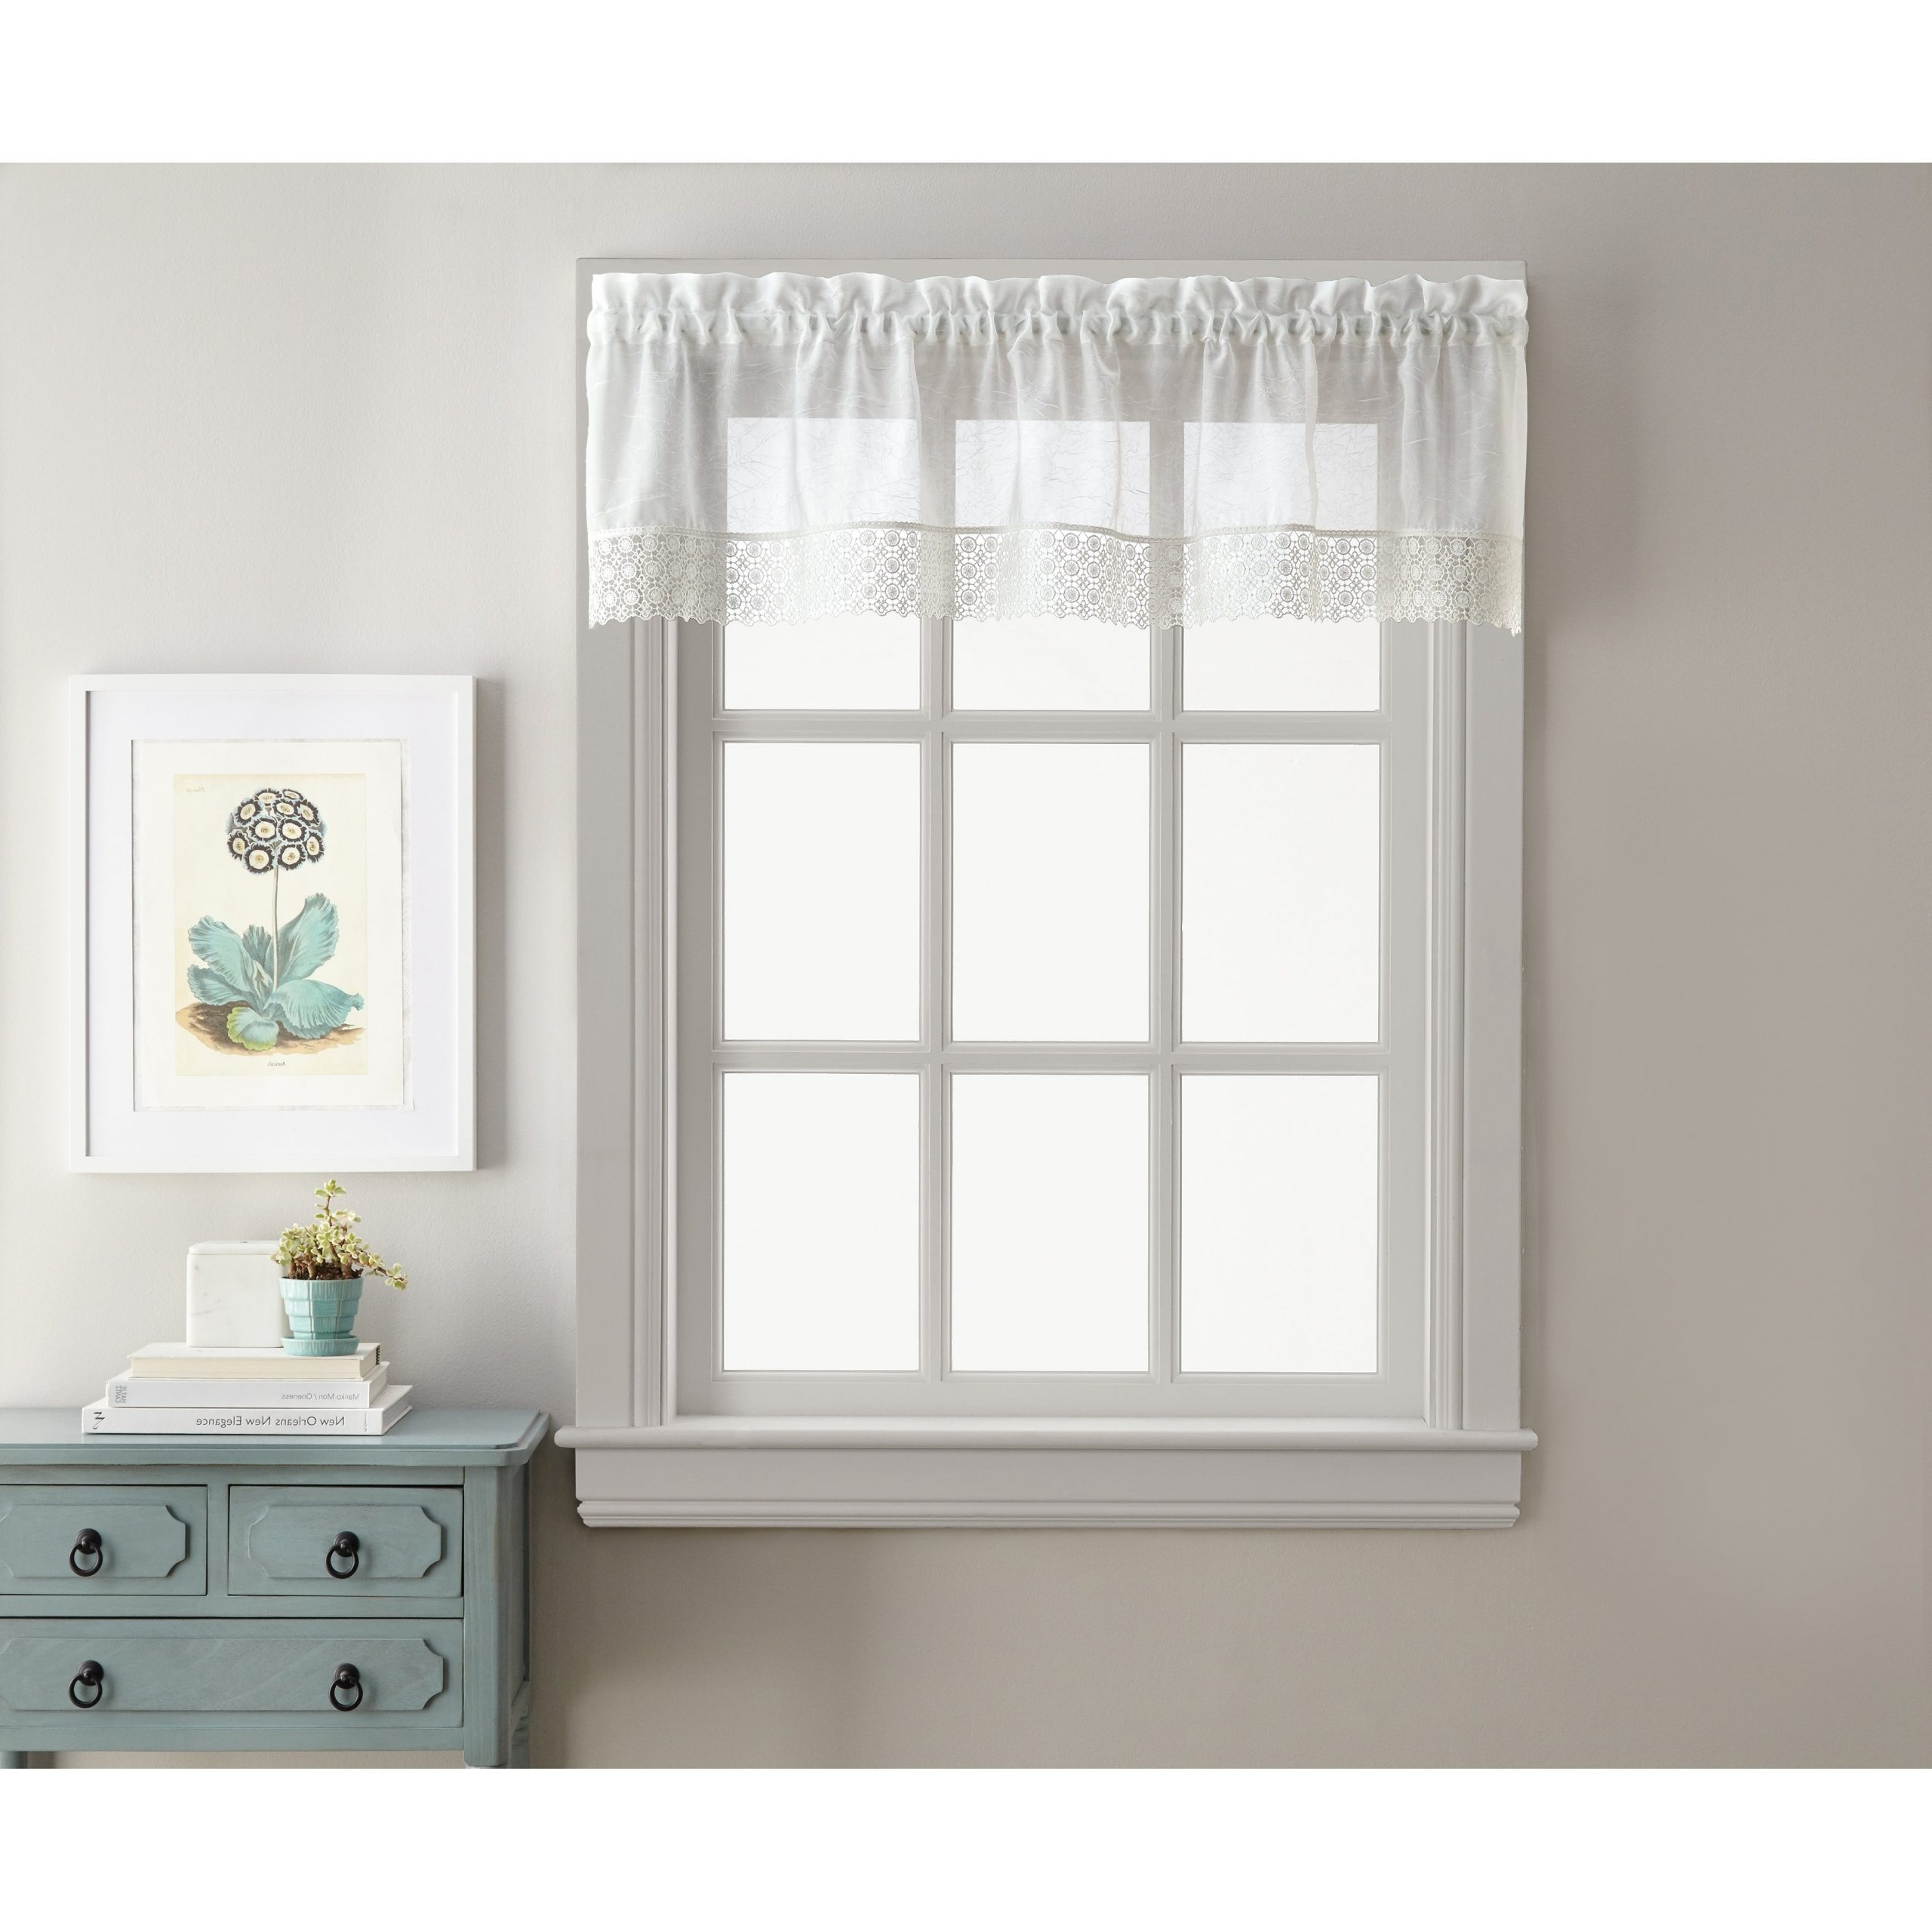 Sweet Adele White Tailored Valance And Tier Pair Curtain Collection With 2021 Tailored Valance And Tier Curtains (View 6 of 20)